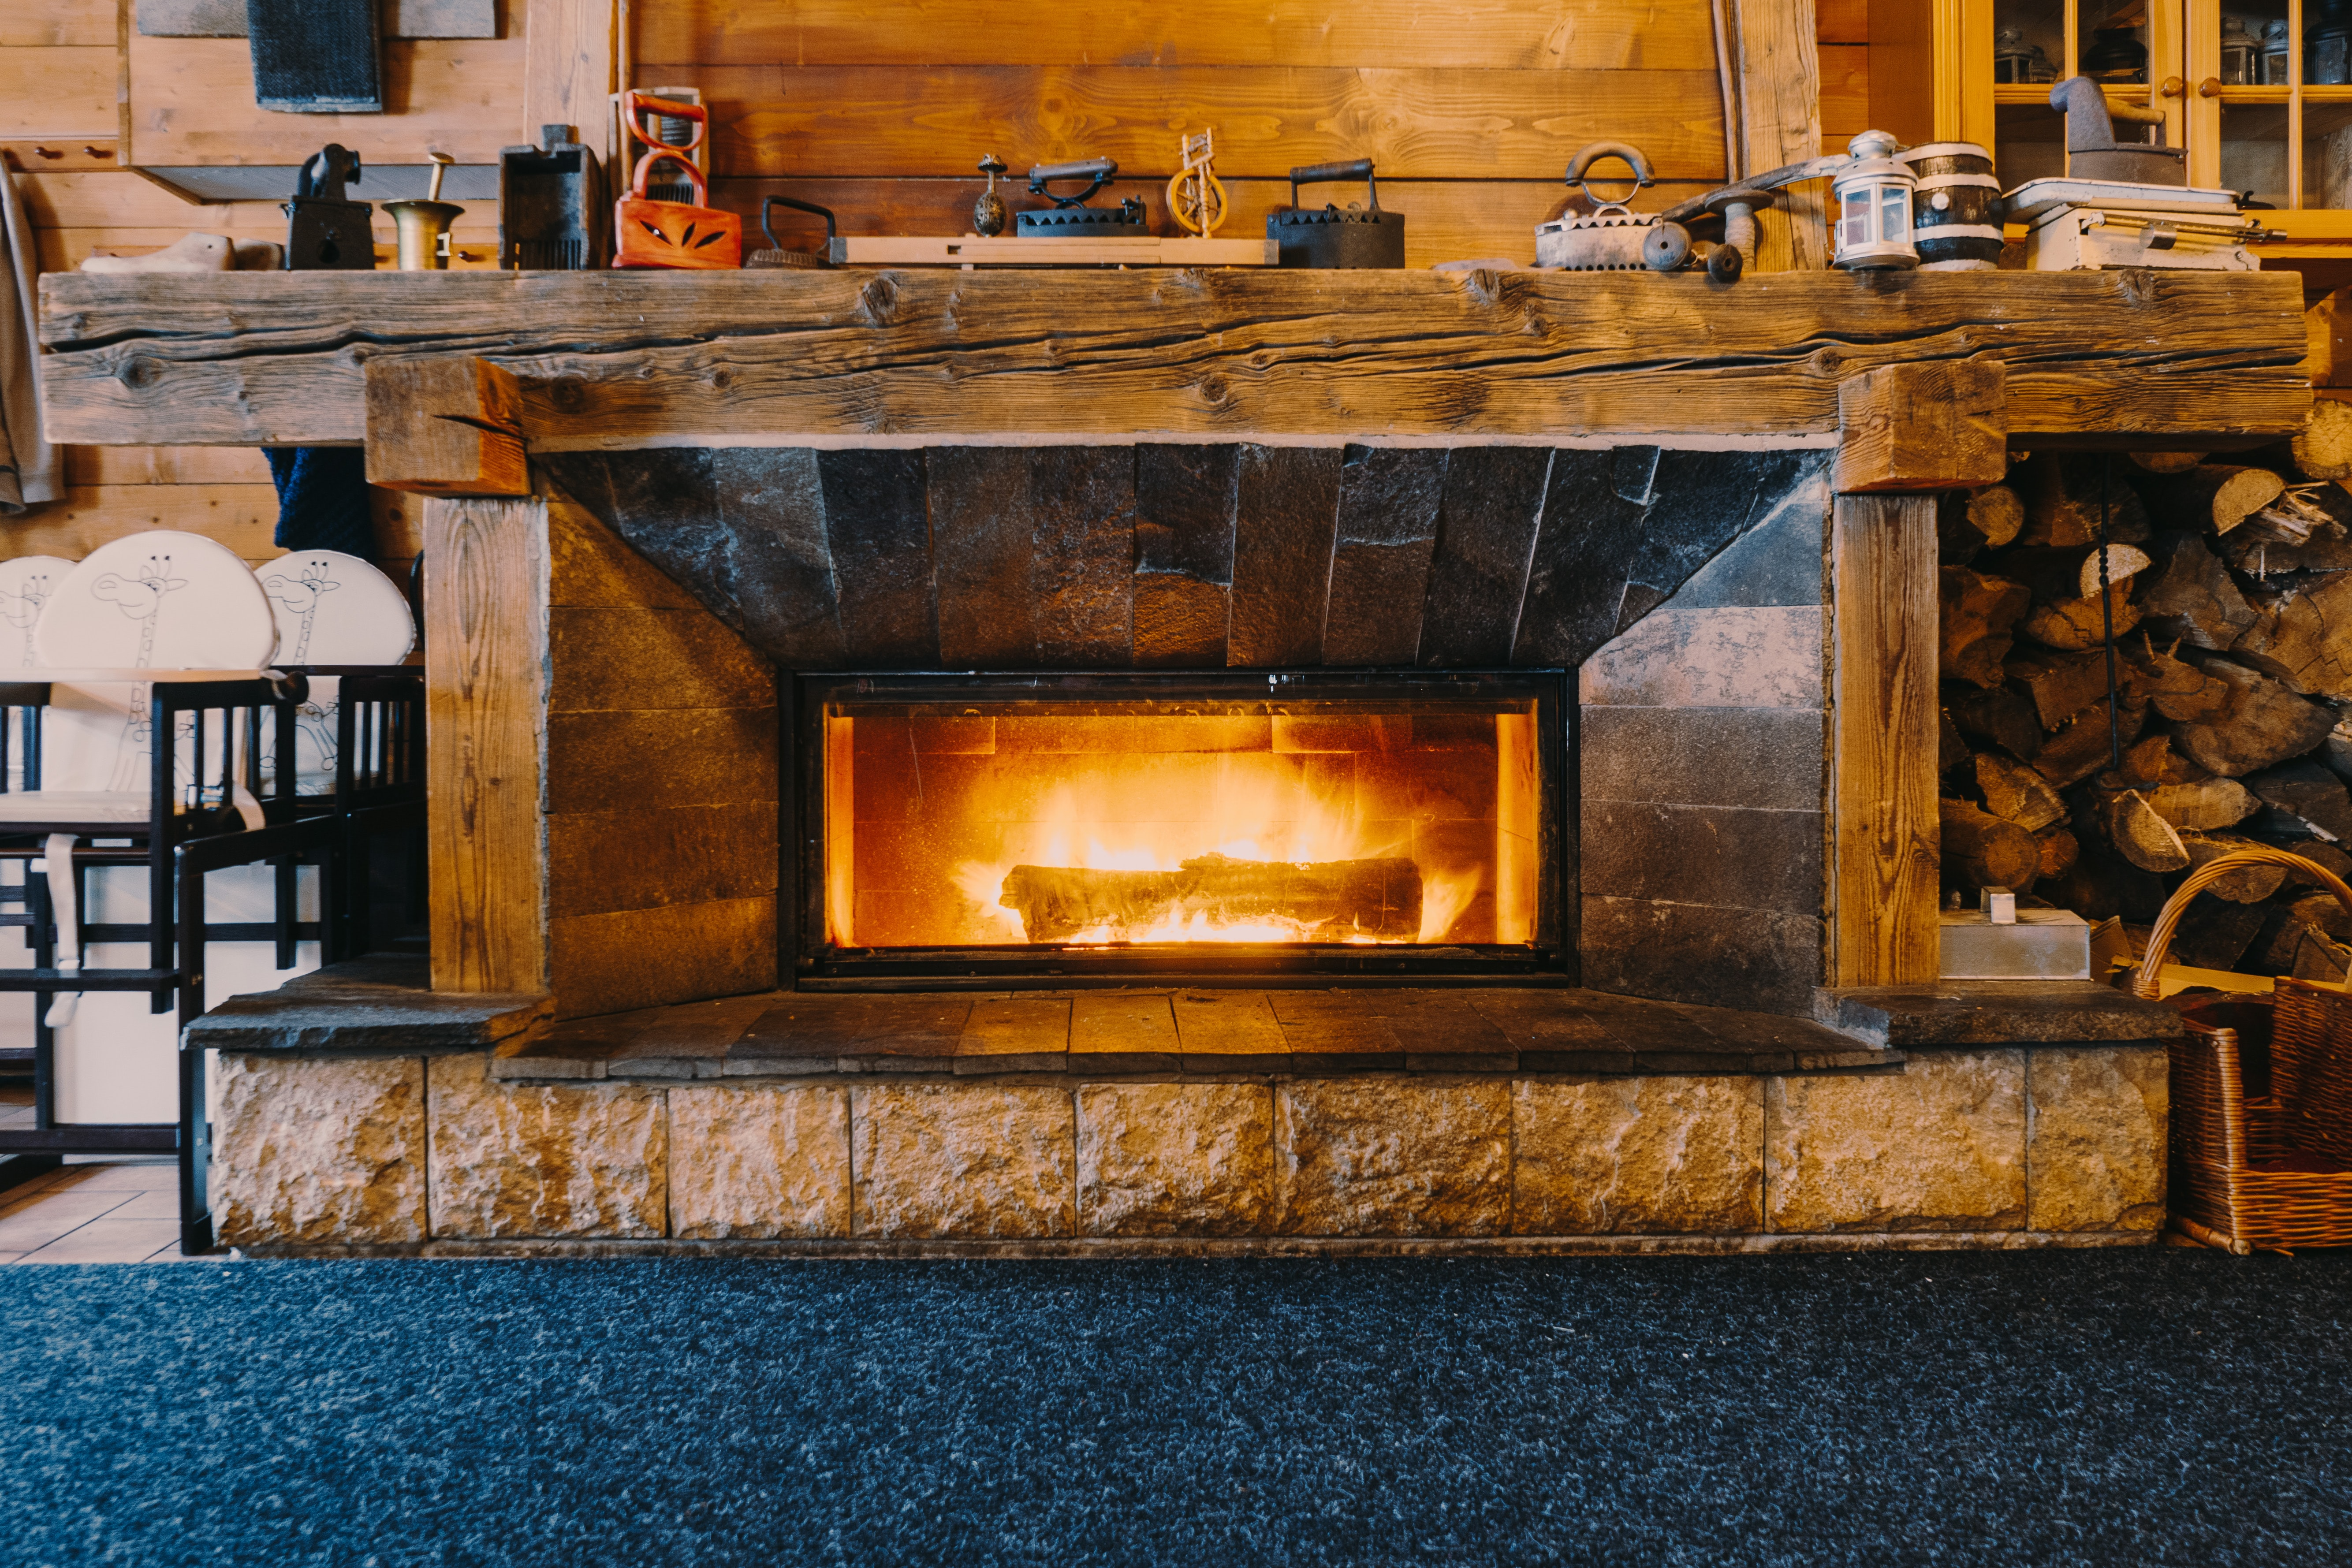 Benefits Of Installing a Propane Fireplace